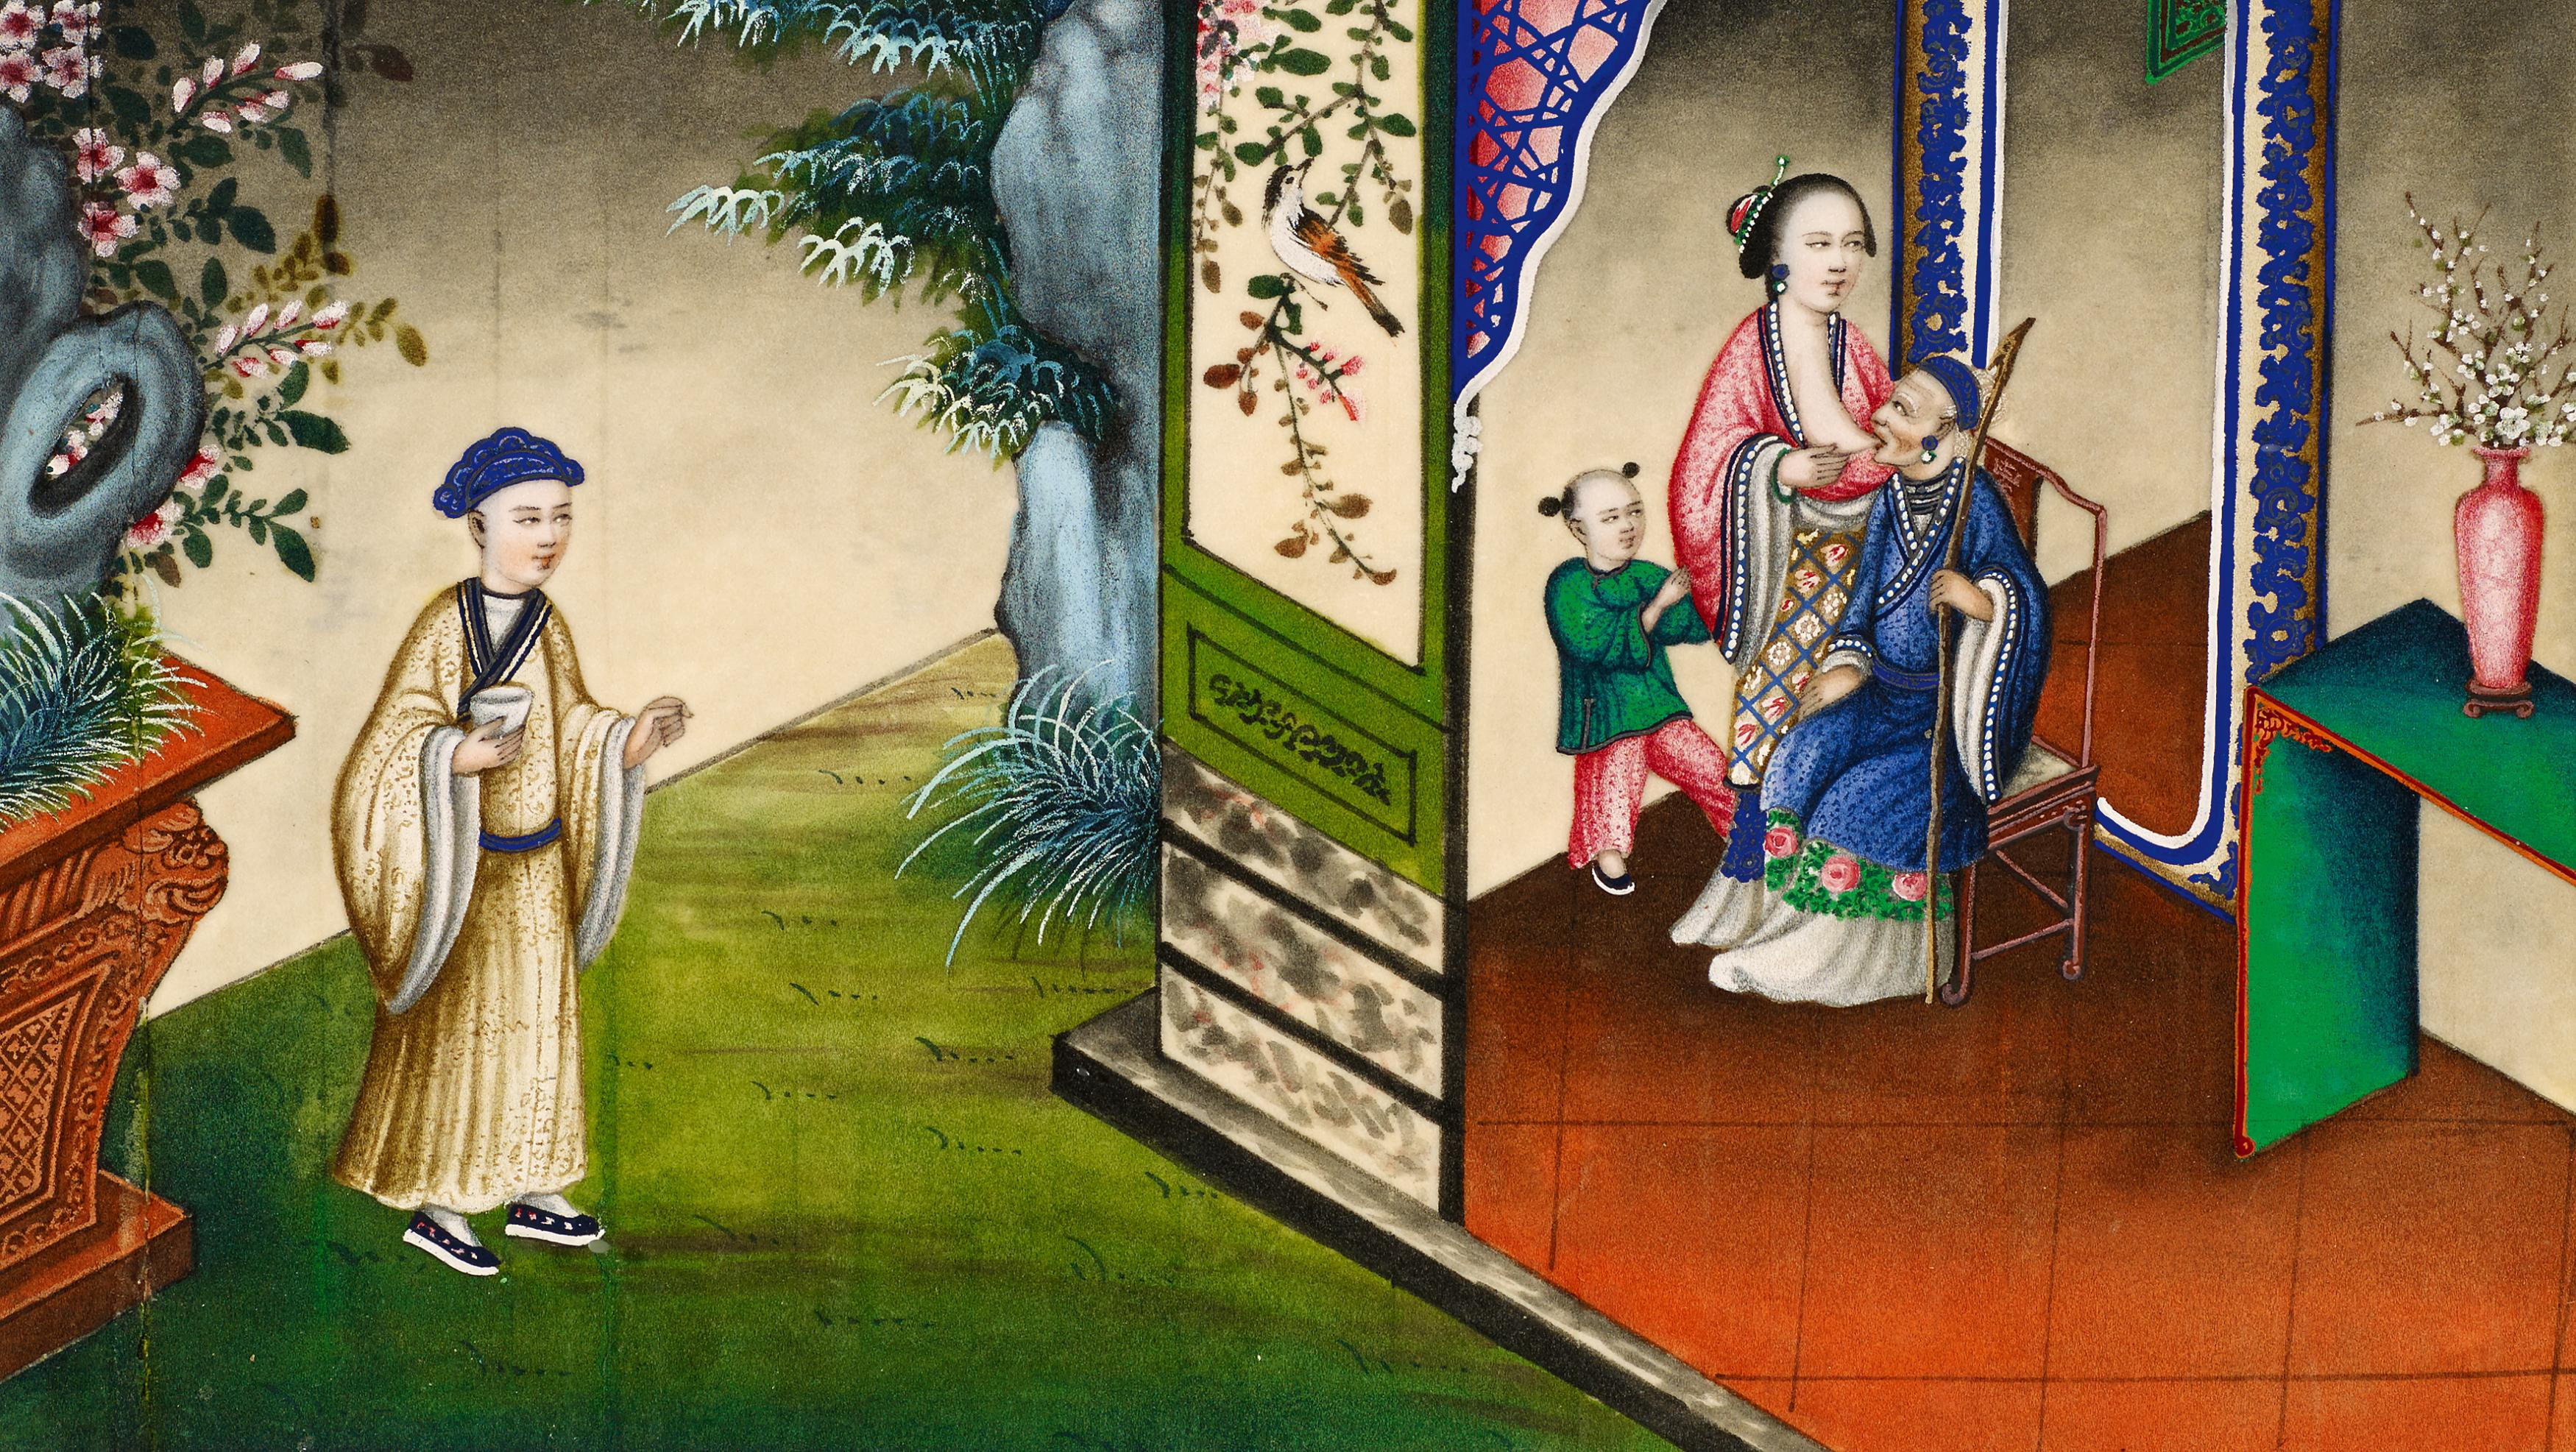 Lot 32 - SEVEN SCENES FROM THE 24 PARAGONS OF FILIAL PIETY. Origin: China. Dynasty: Late Qing dynasty.